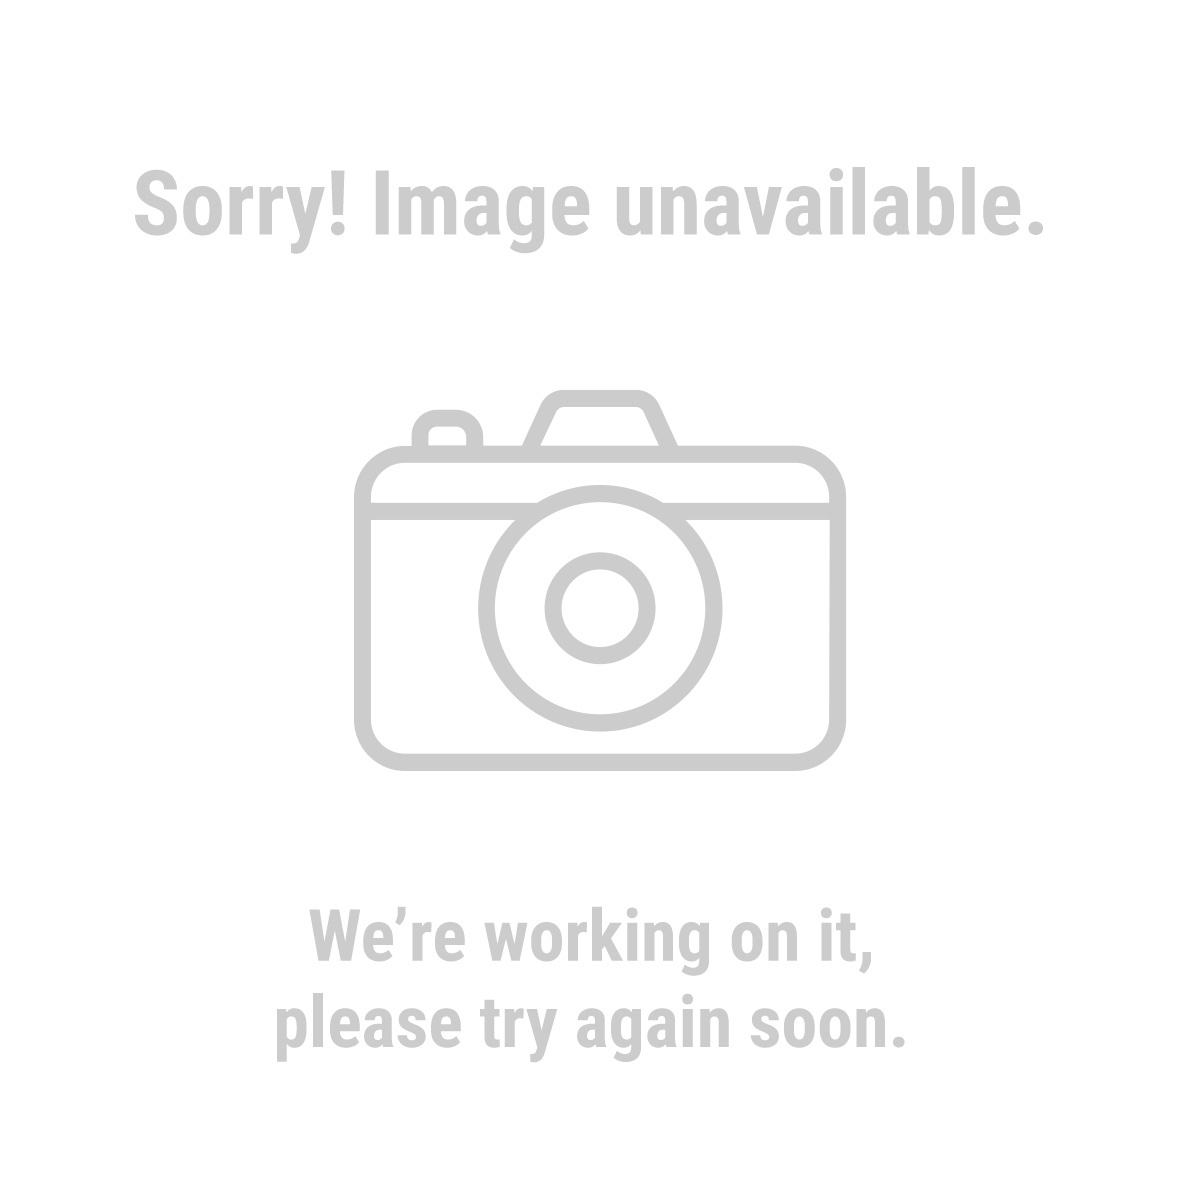 Pittsburgh® 62727 12 Pc Cushion Grip Screwdriver Set